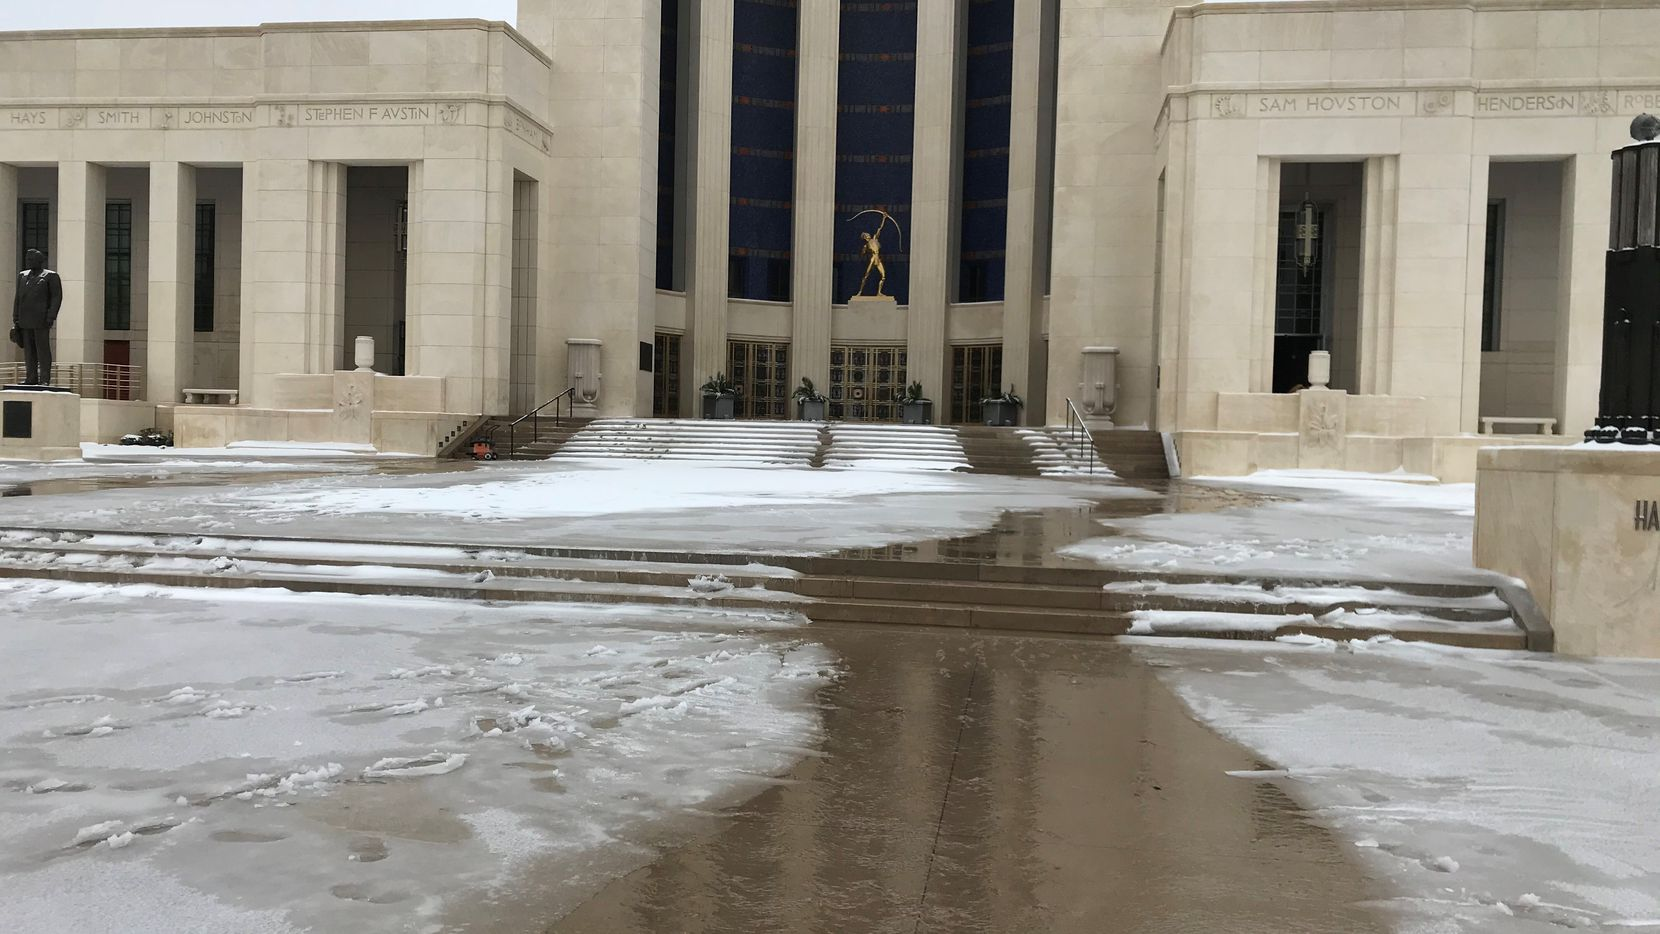 Water flows from the entrance at the Hall of State in Dallas on Feb. 17, 2021. The building was one of several Fair Park facilities that sustained water damage from broken water pipes during the winter storm.